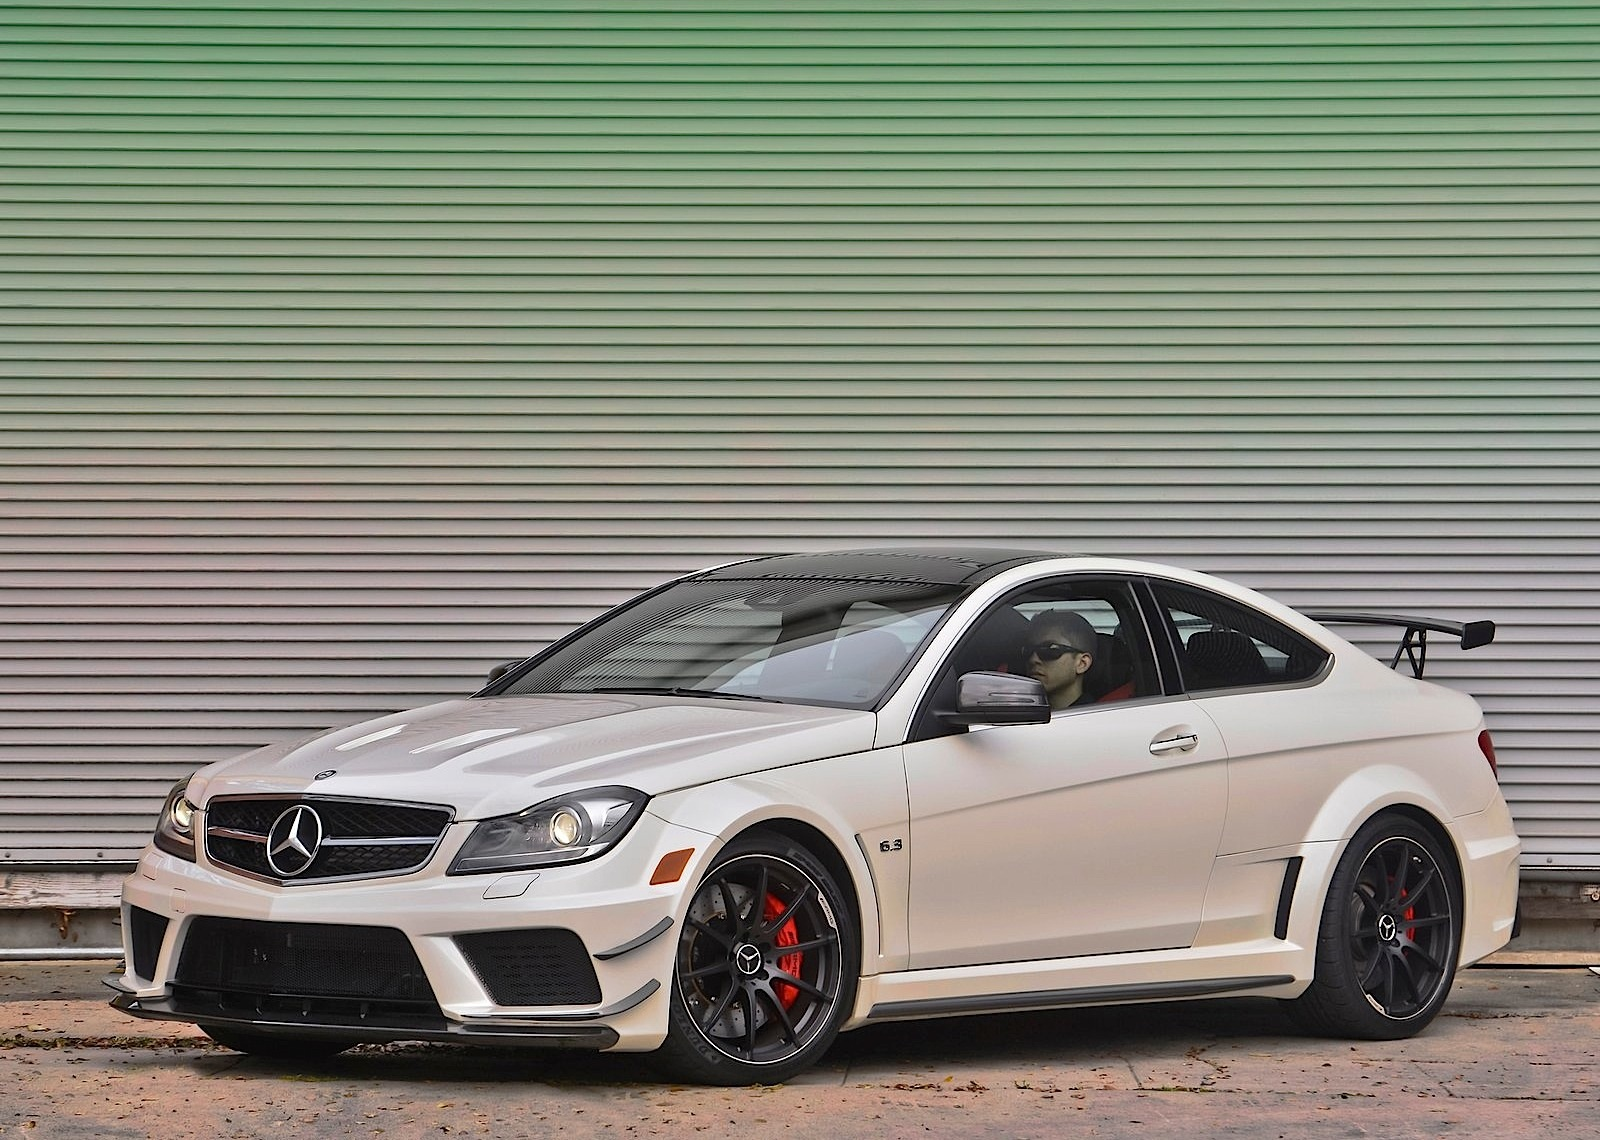 Mercedes c63 amg black series coupe price for 2012 mercedes benz c63 amg coupe for sale